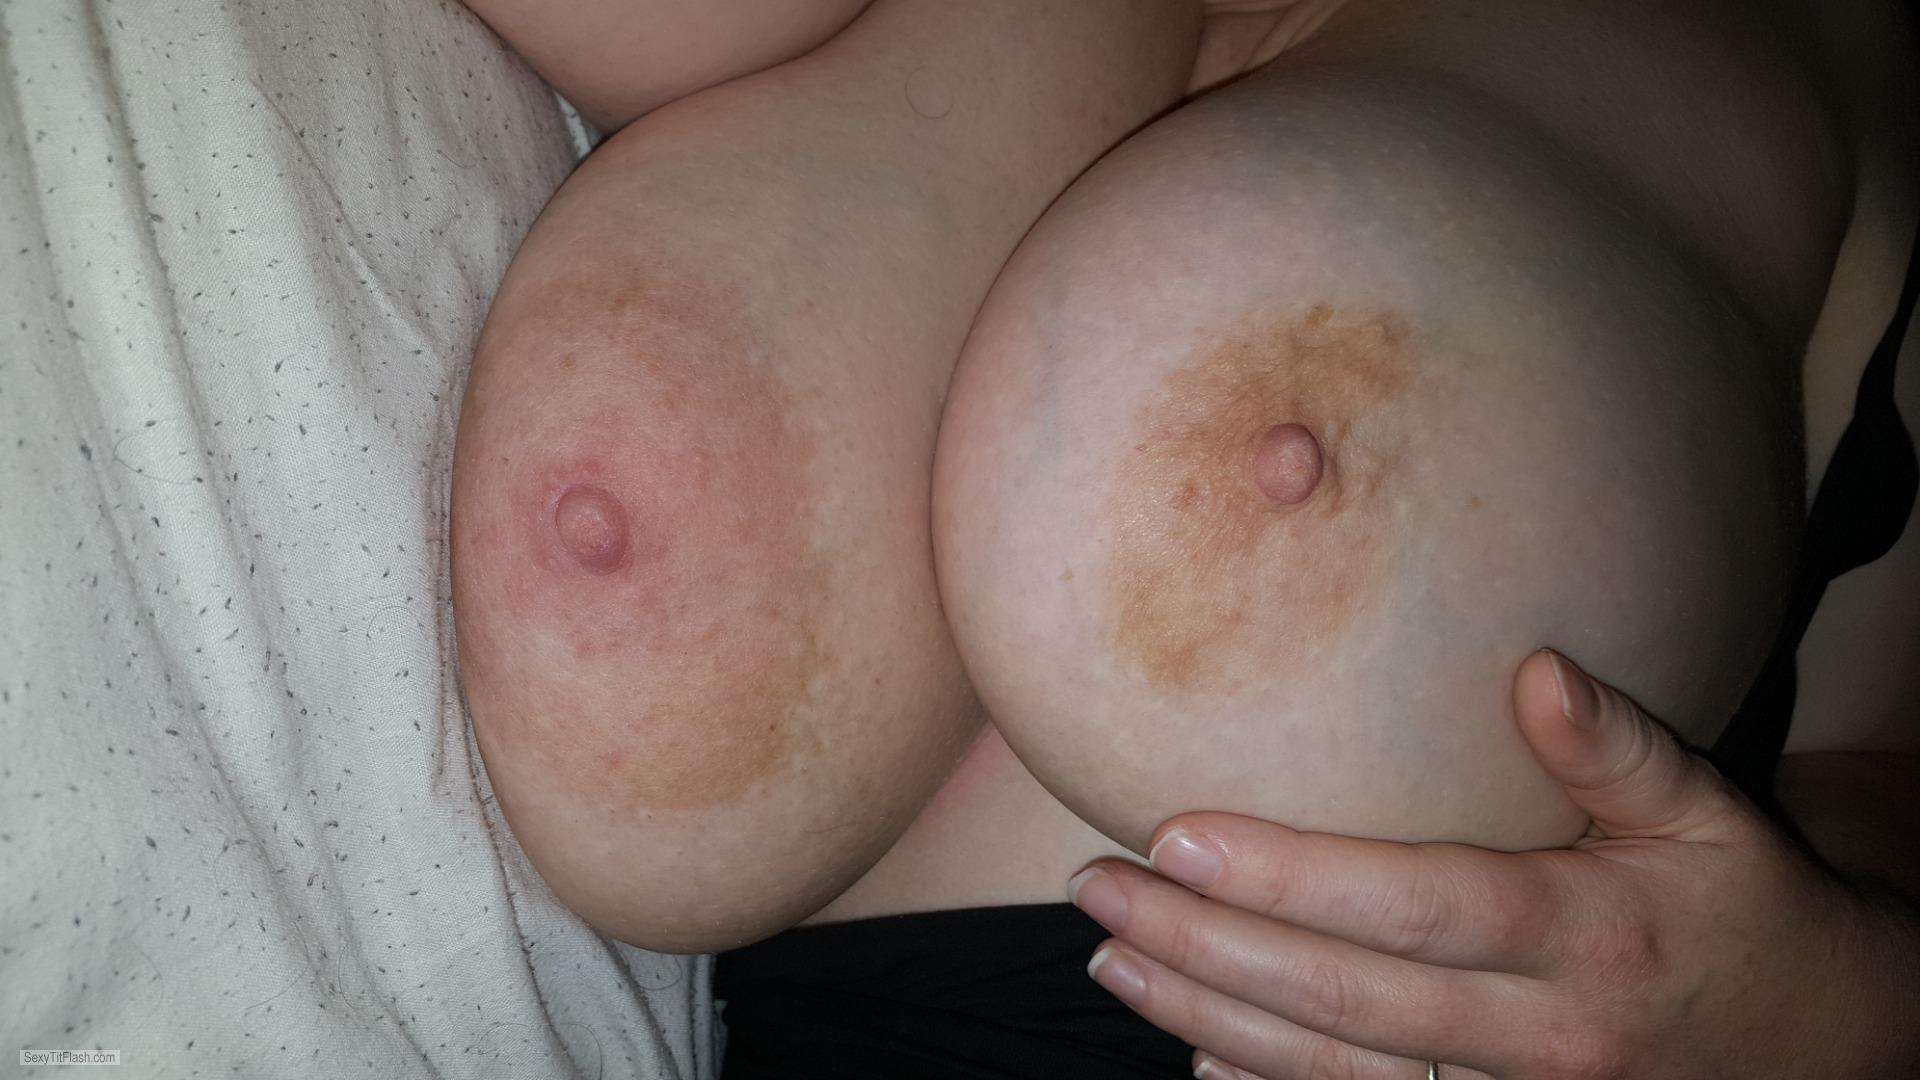 Tit Flash: Girlfriend's Very Big Tits - My Fiancé Bit Tits from United Kingdom